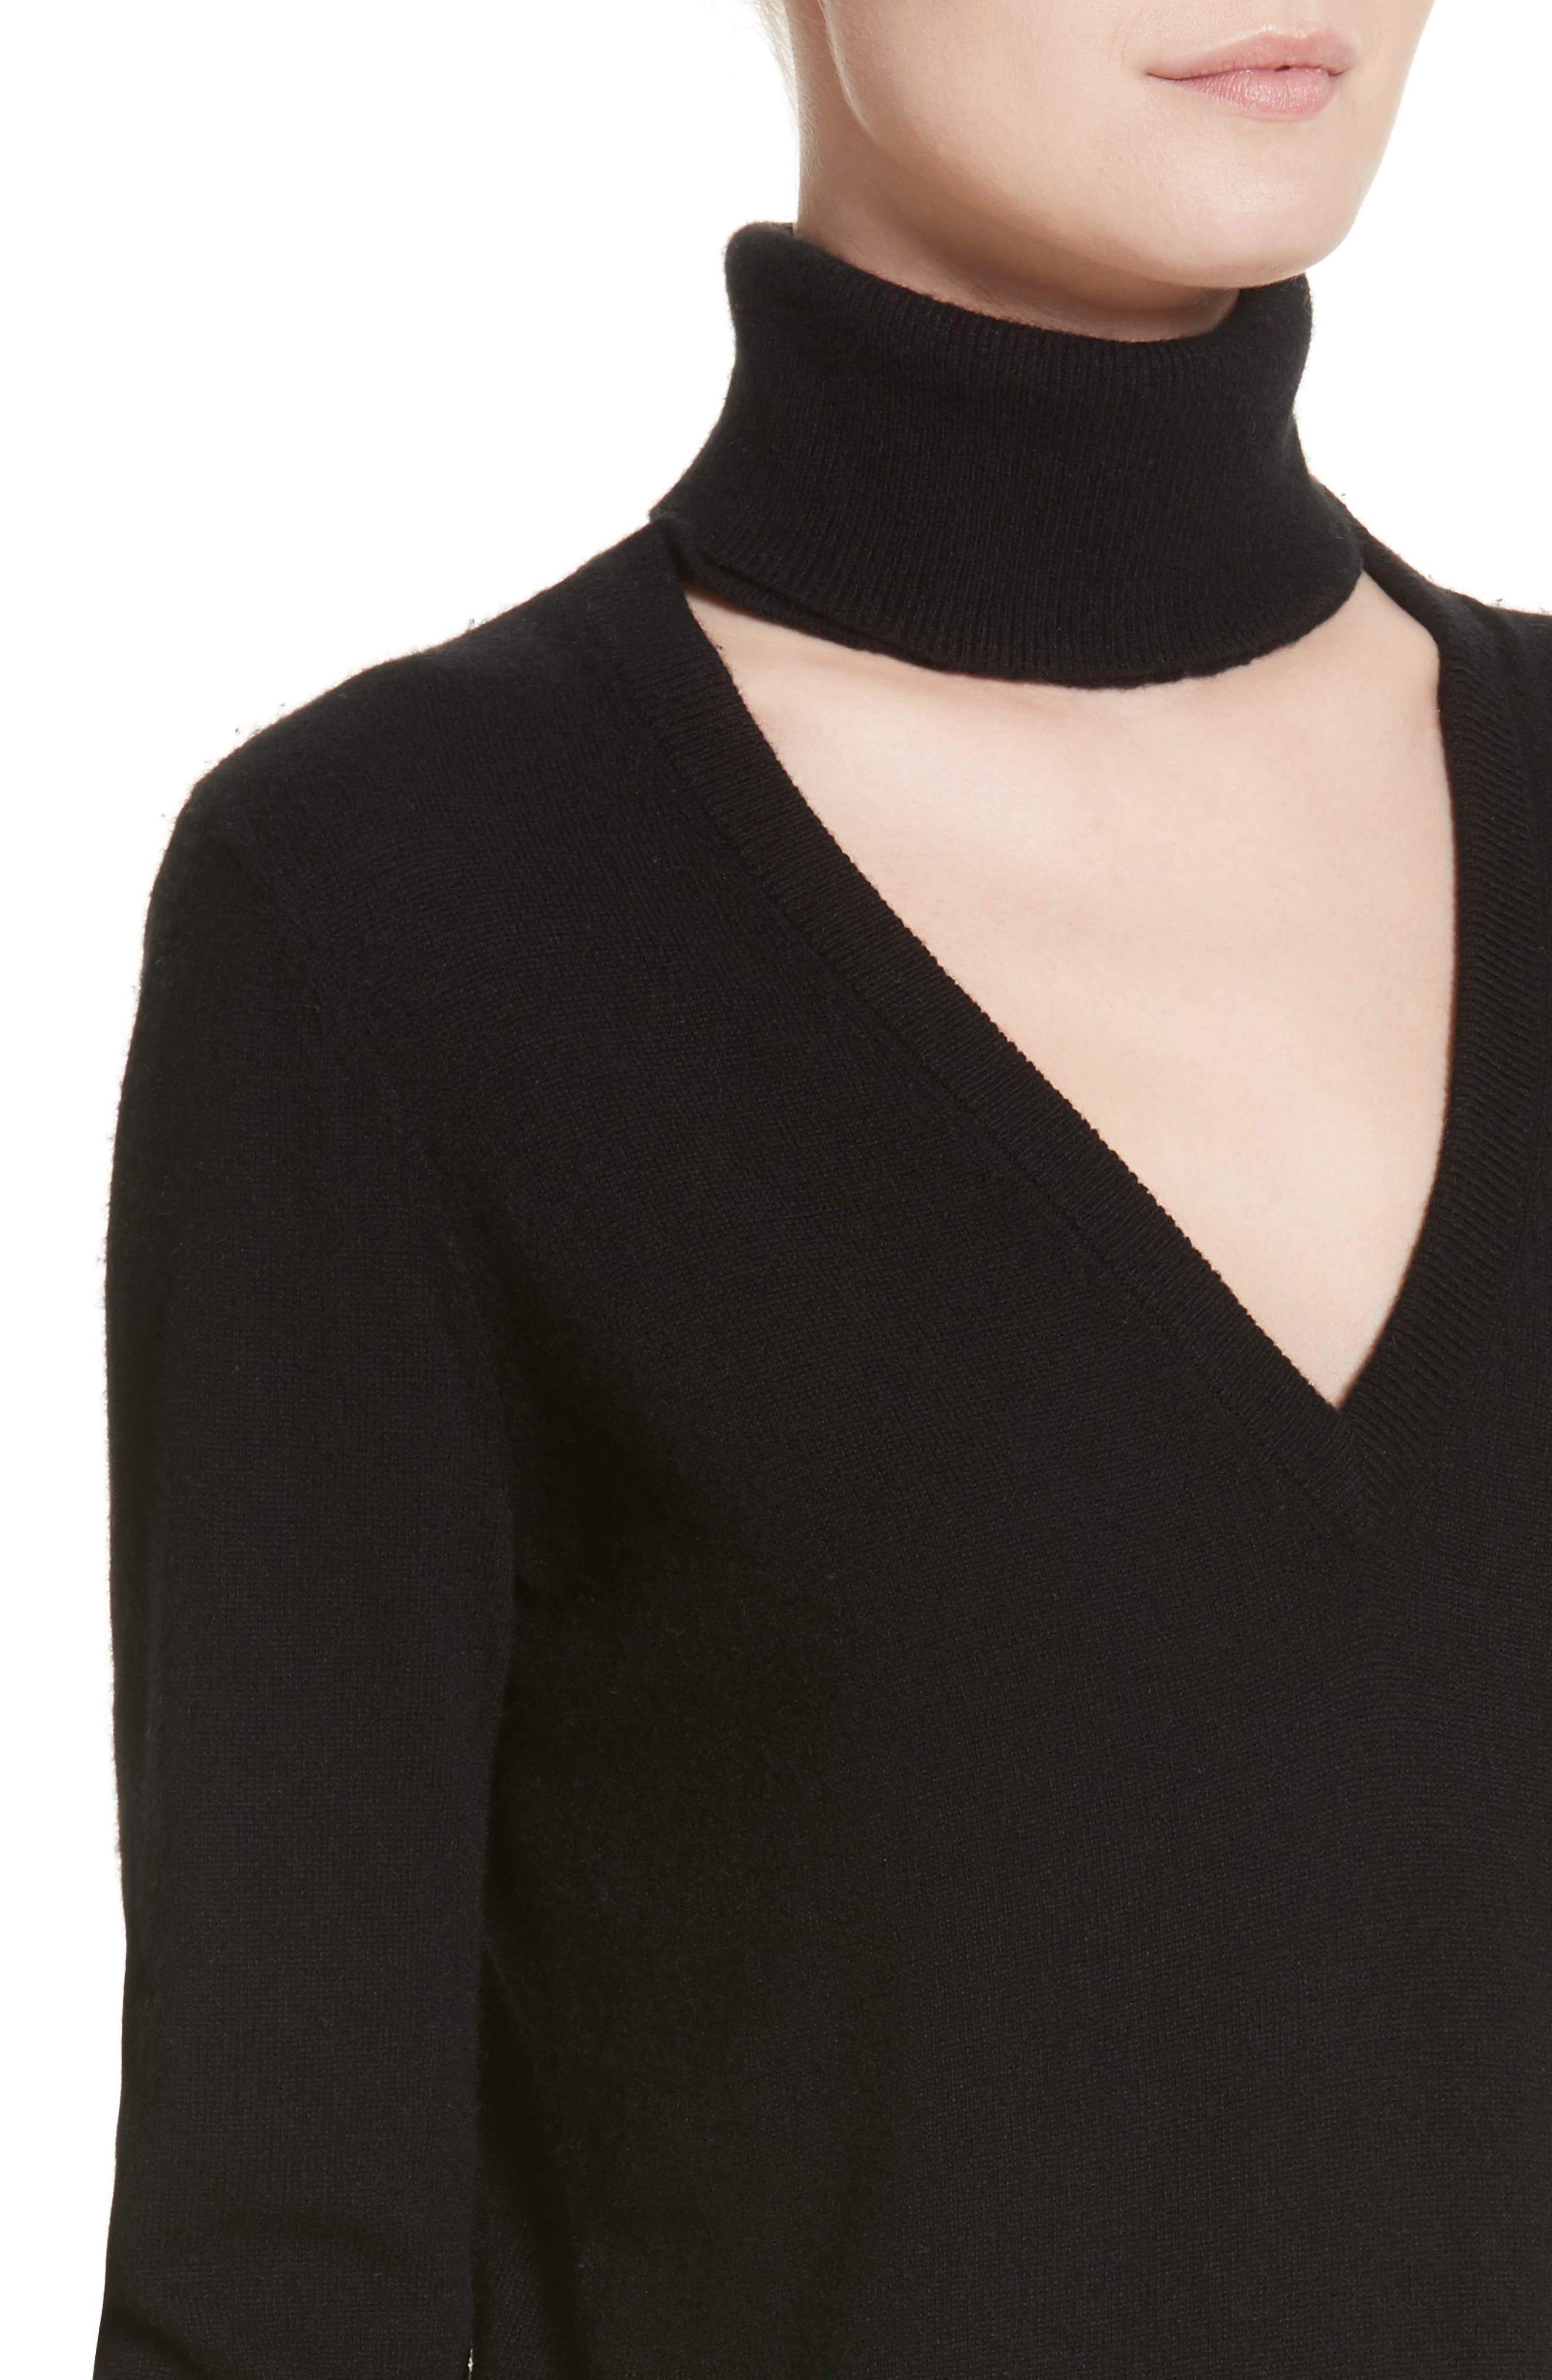 Cutout Turtleneck Cashmere Sweater,                             Alternate thumbnail 4, color,                             Black